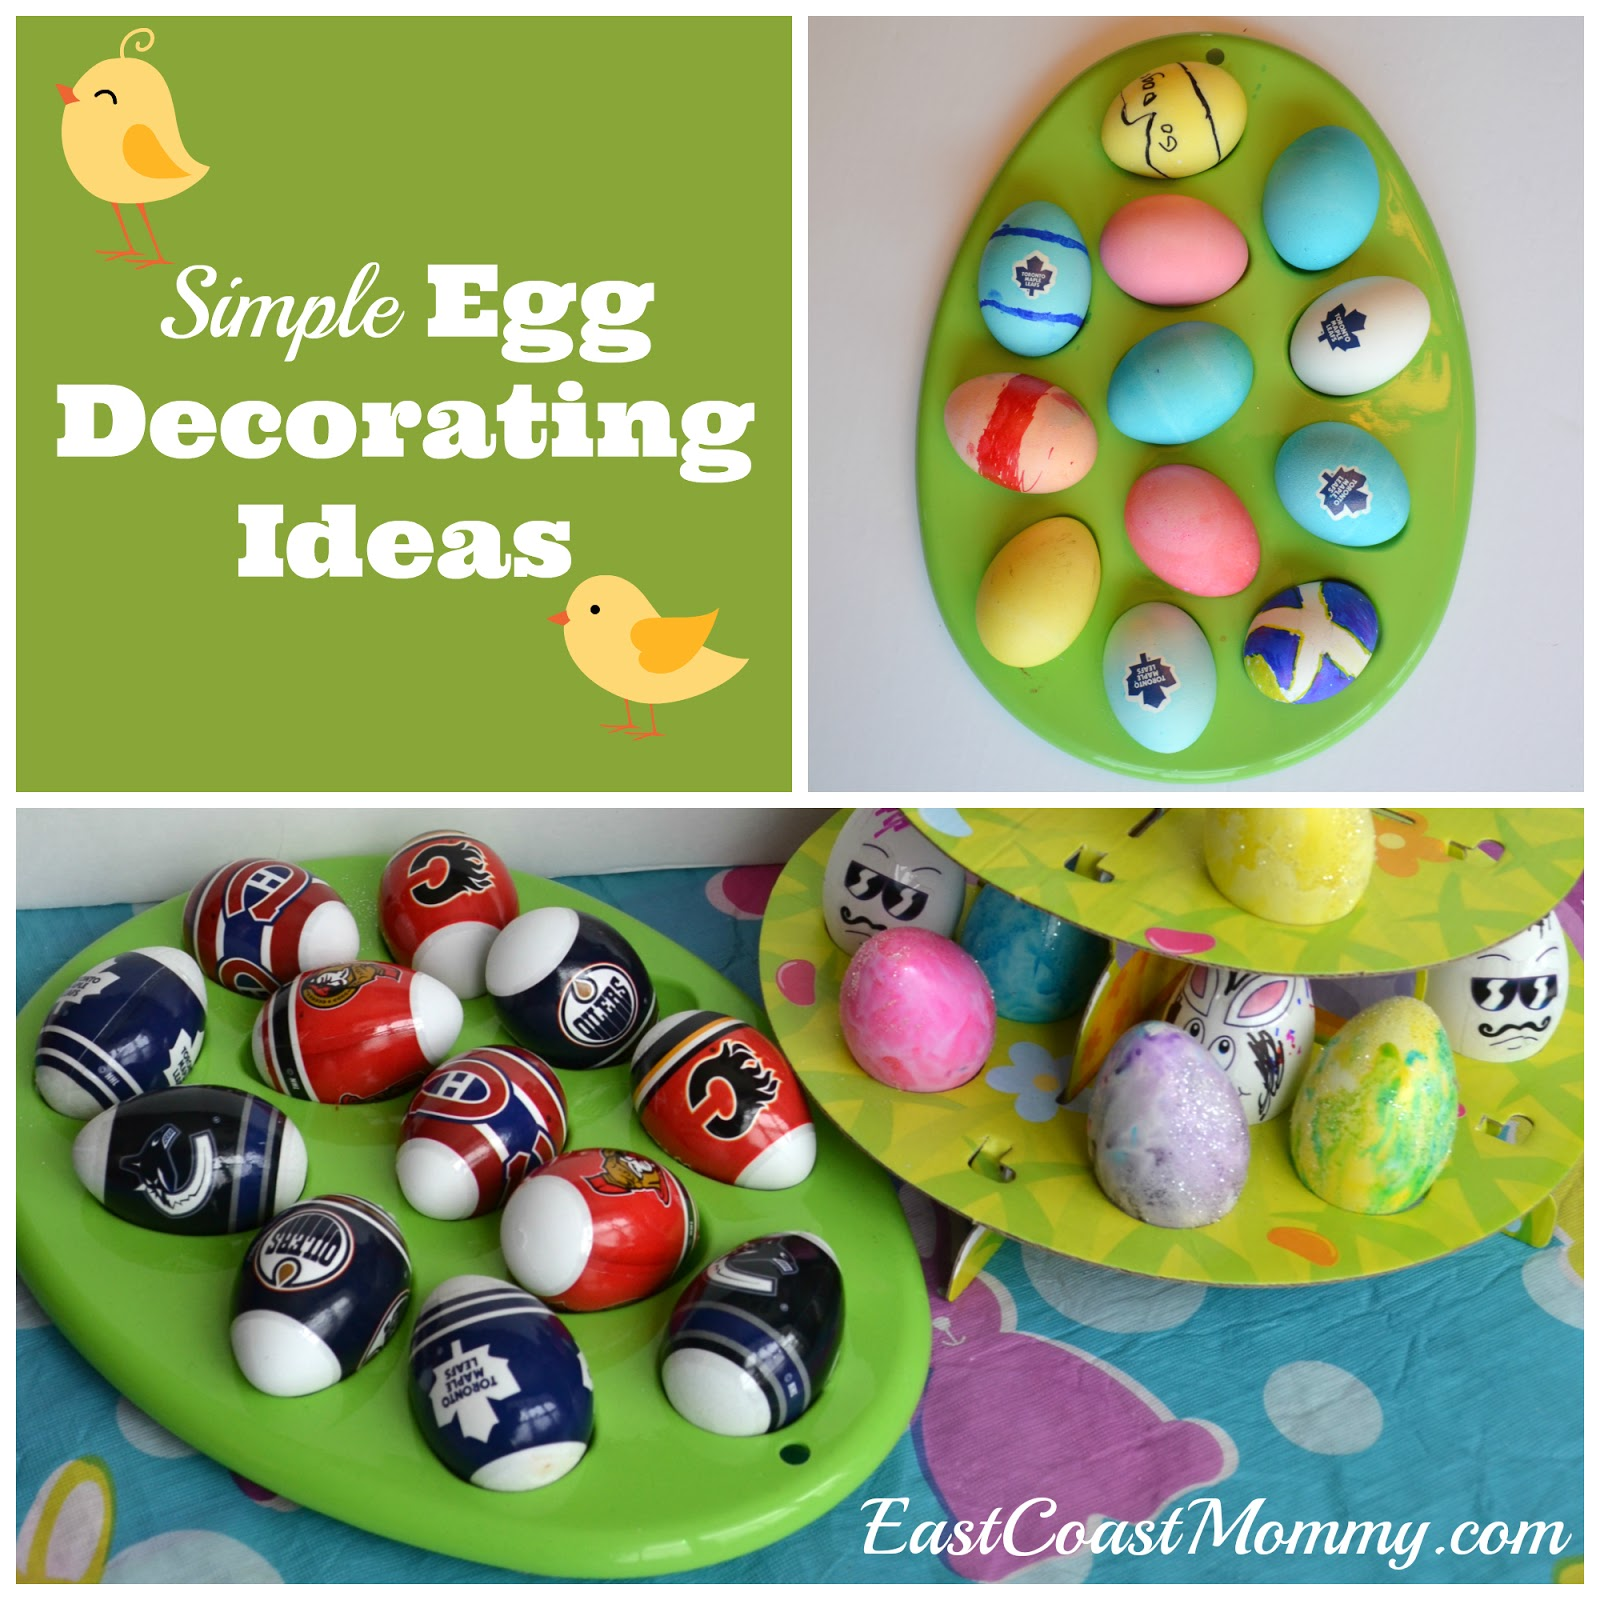 Easy Easter Egg Decorating Ideas It's not Easter without bright Spring-colored Easter eggs to decorate. Whether hidden around the house for the kids to hunt or set up as a creative centerpiece, Easter eggs are a key component to every family's celebration.